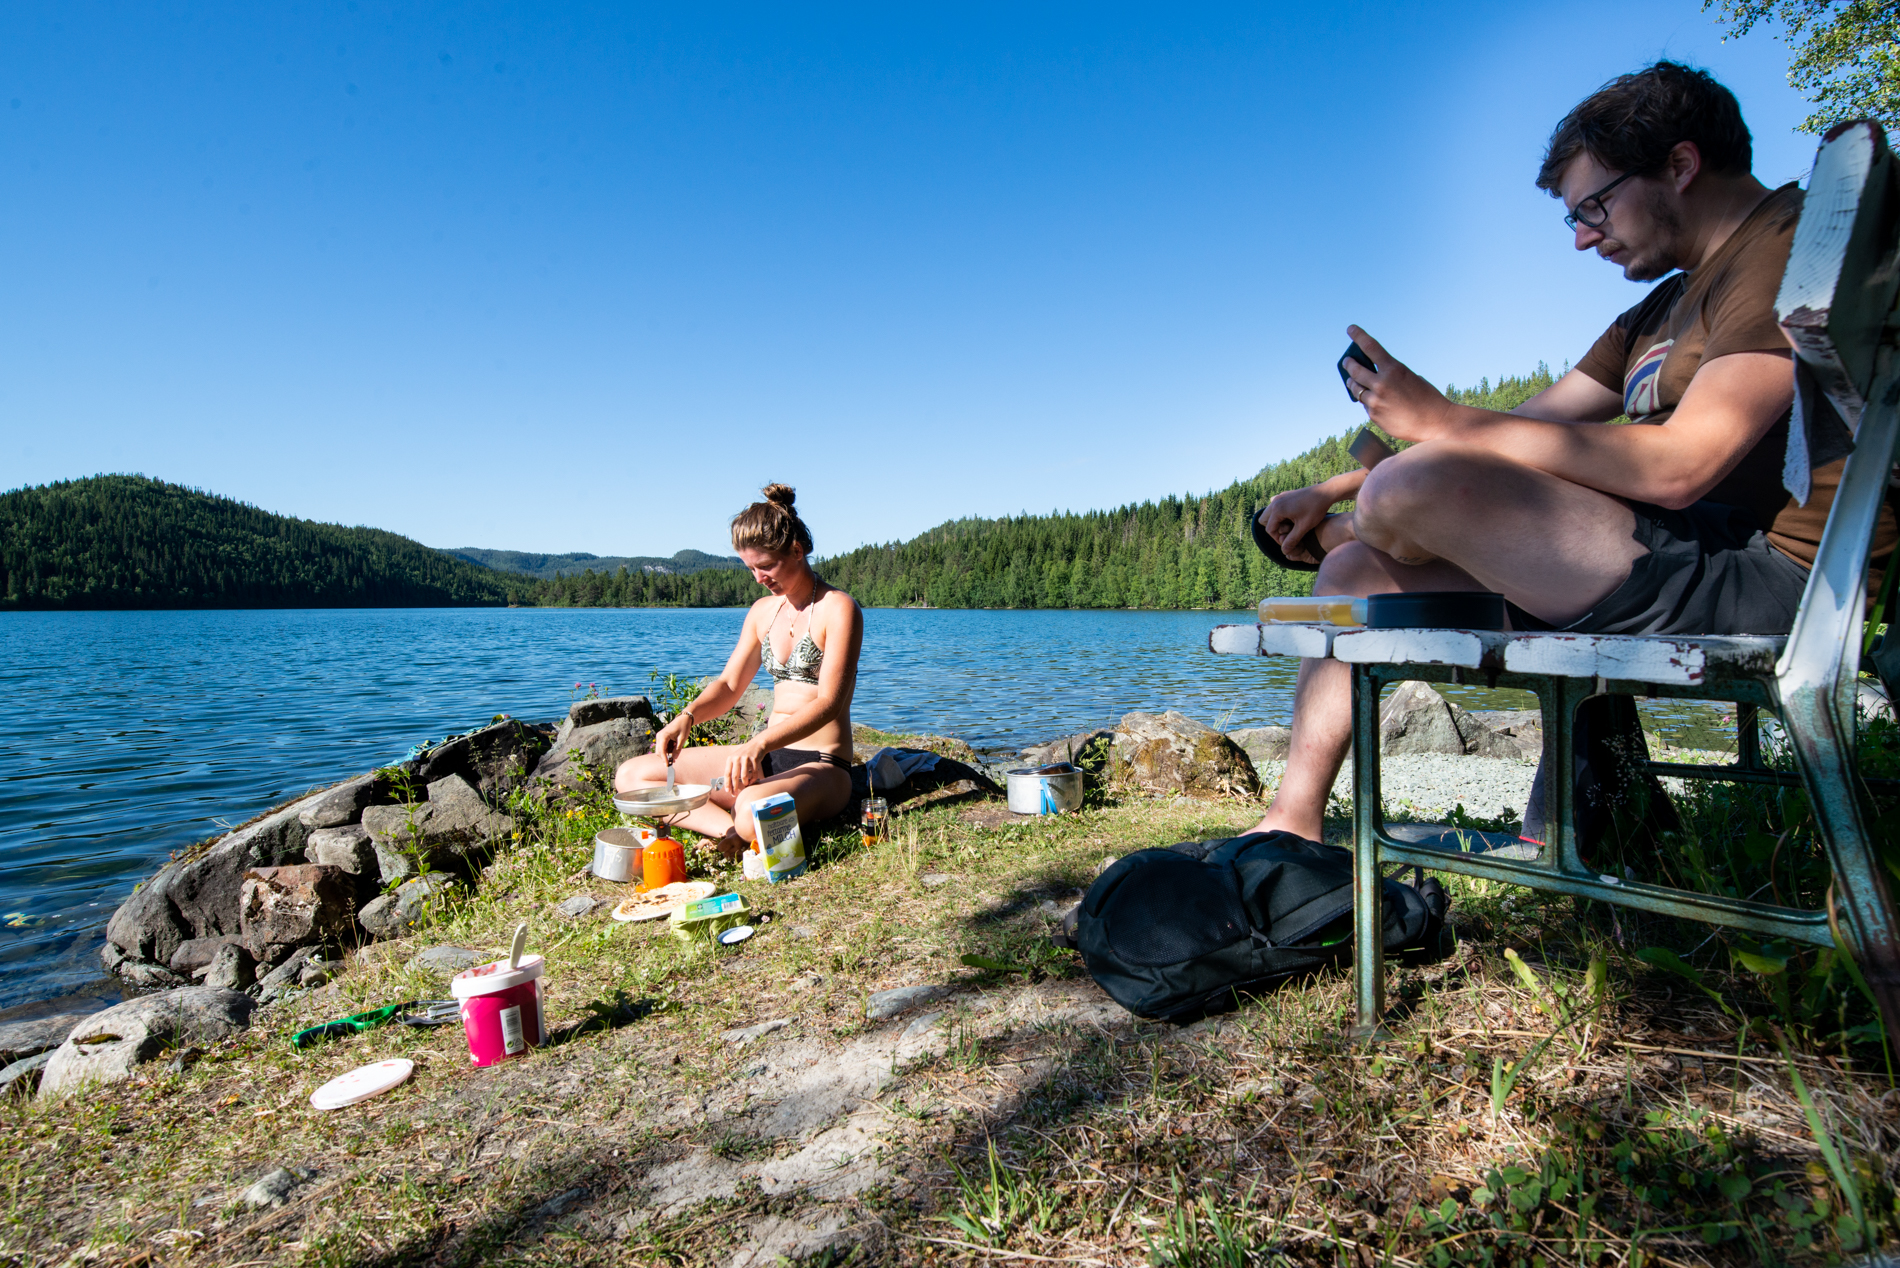 Ellis&me in Norway, Grøtvatnet, camping at a lake. Ellis is making Dutch pancakes for breakfast and Martijn has a skype meeting for work, being a ditigal nomad.